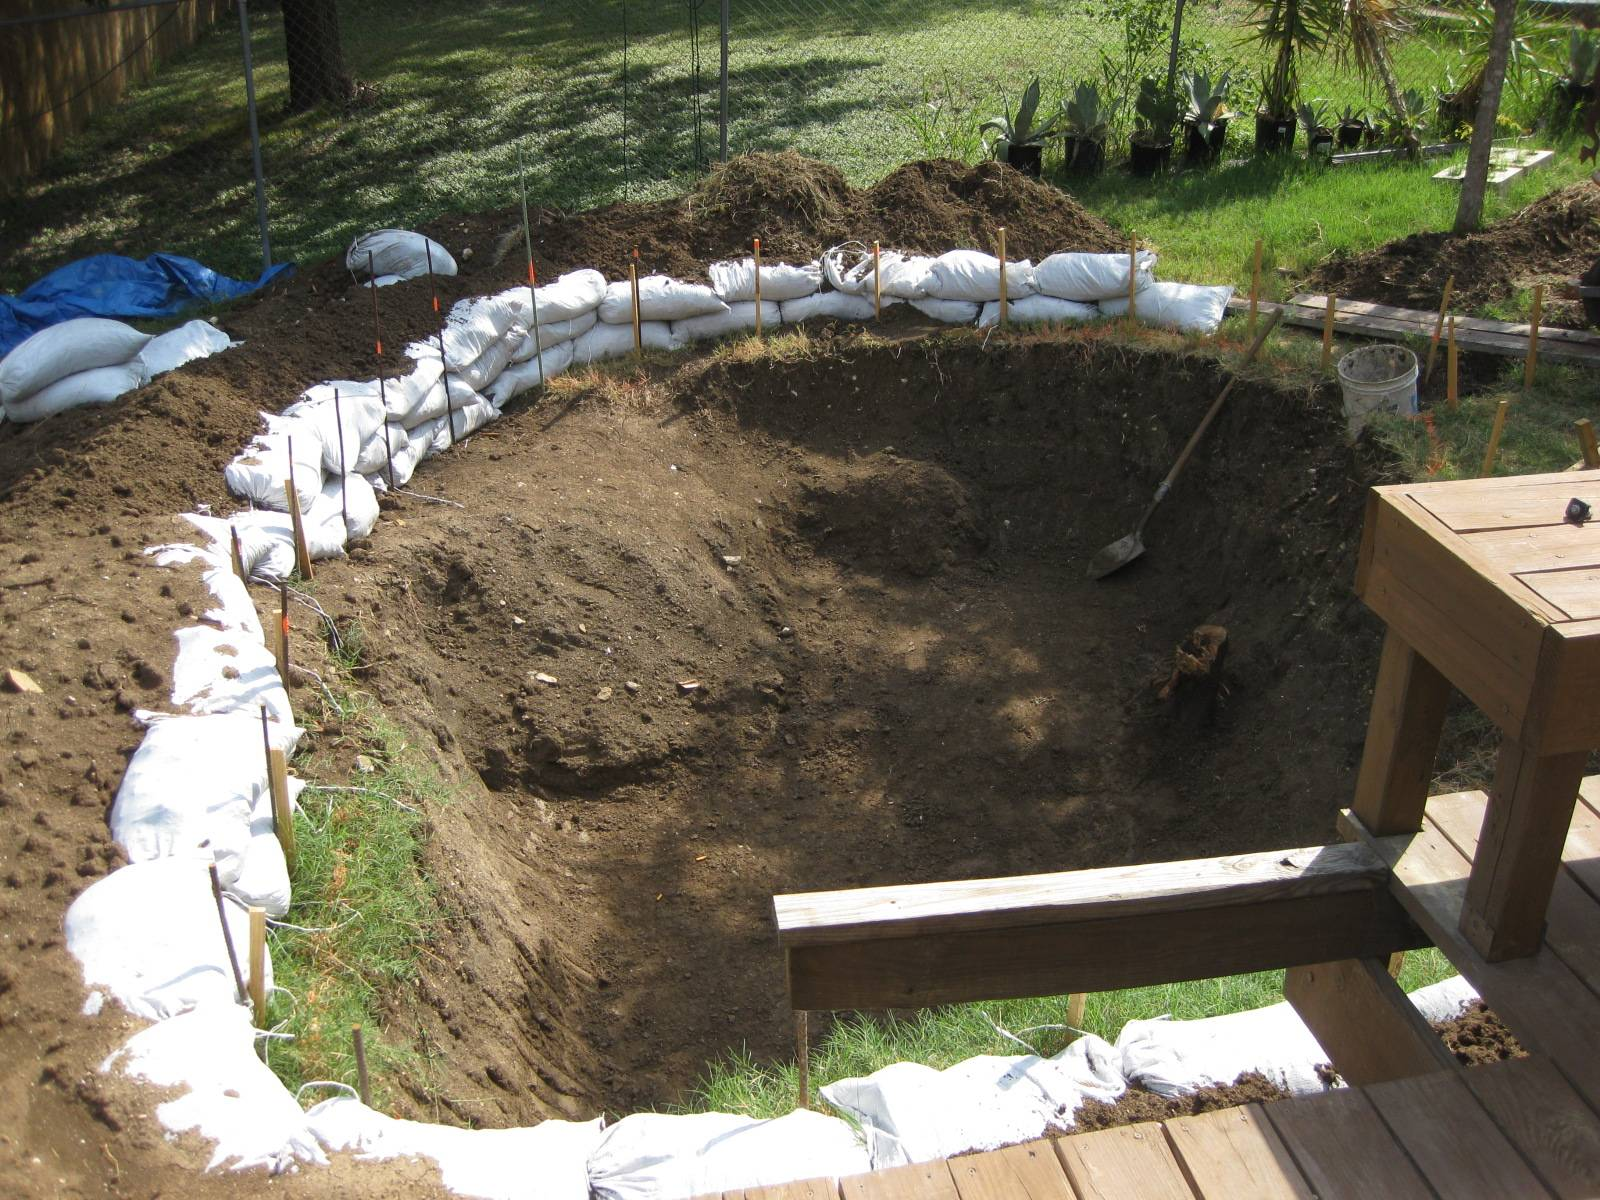 How to turn a hole into a swimming pool garage montage - Building a swimming pool on a slope ...